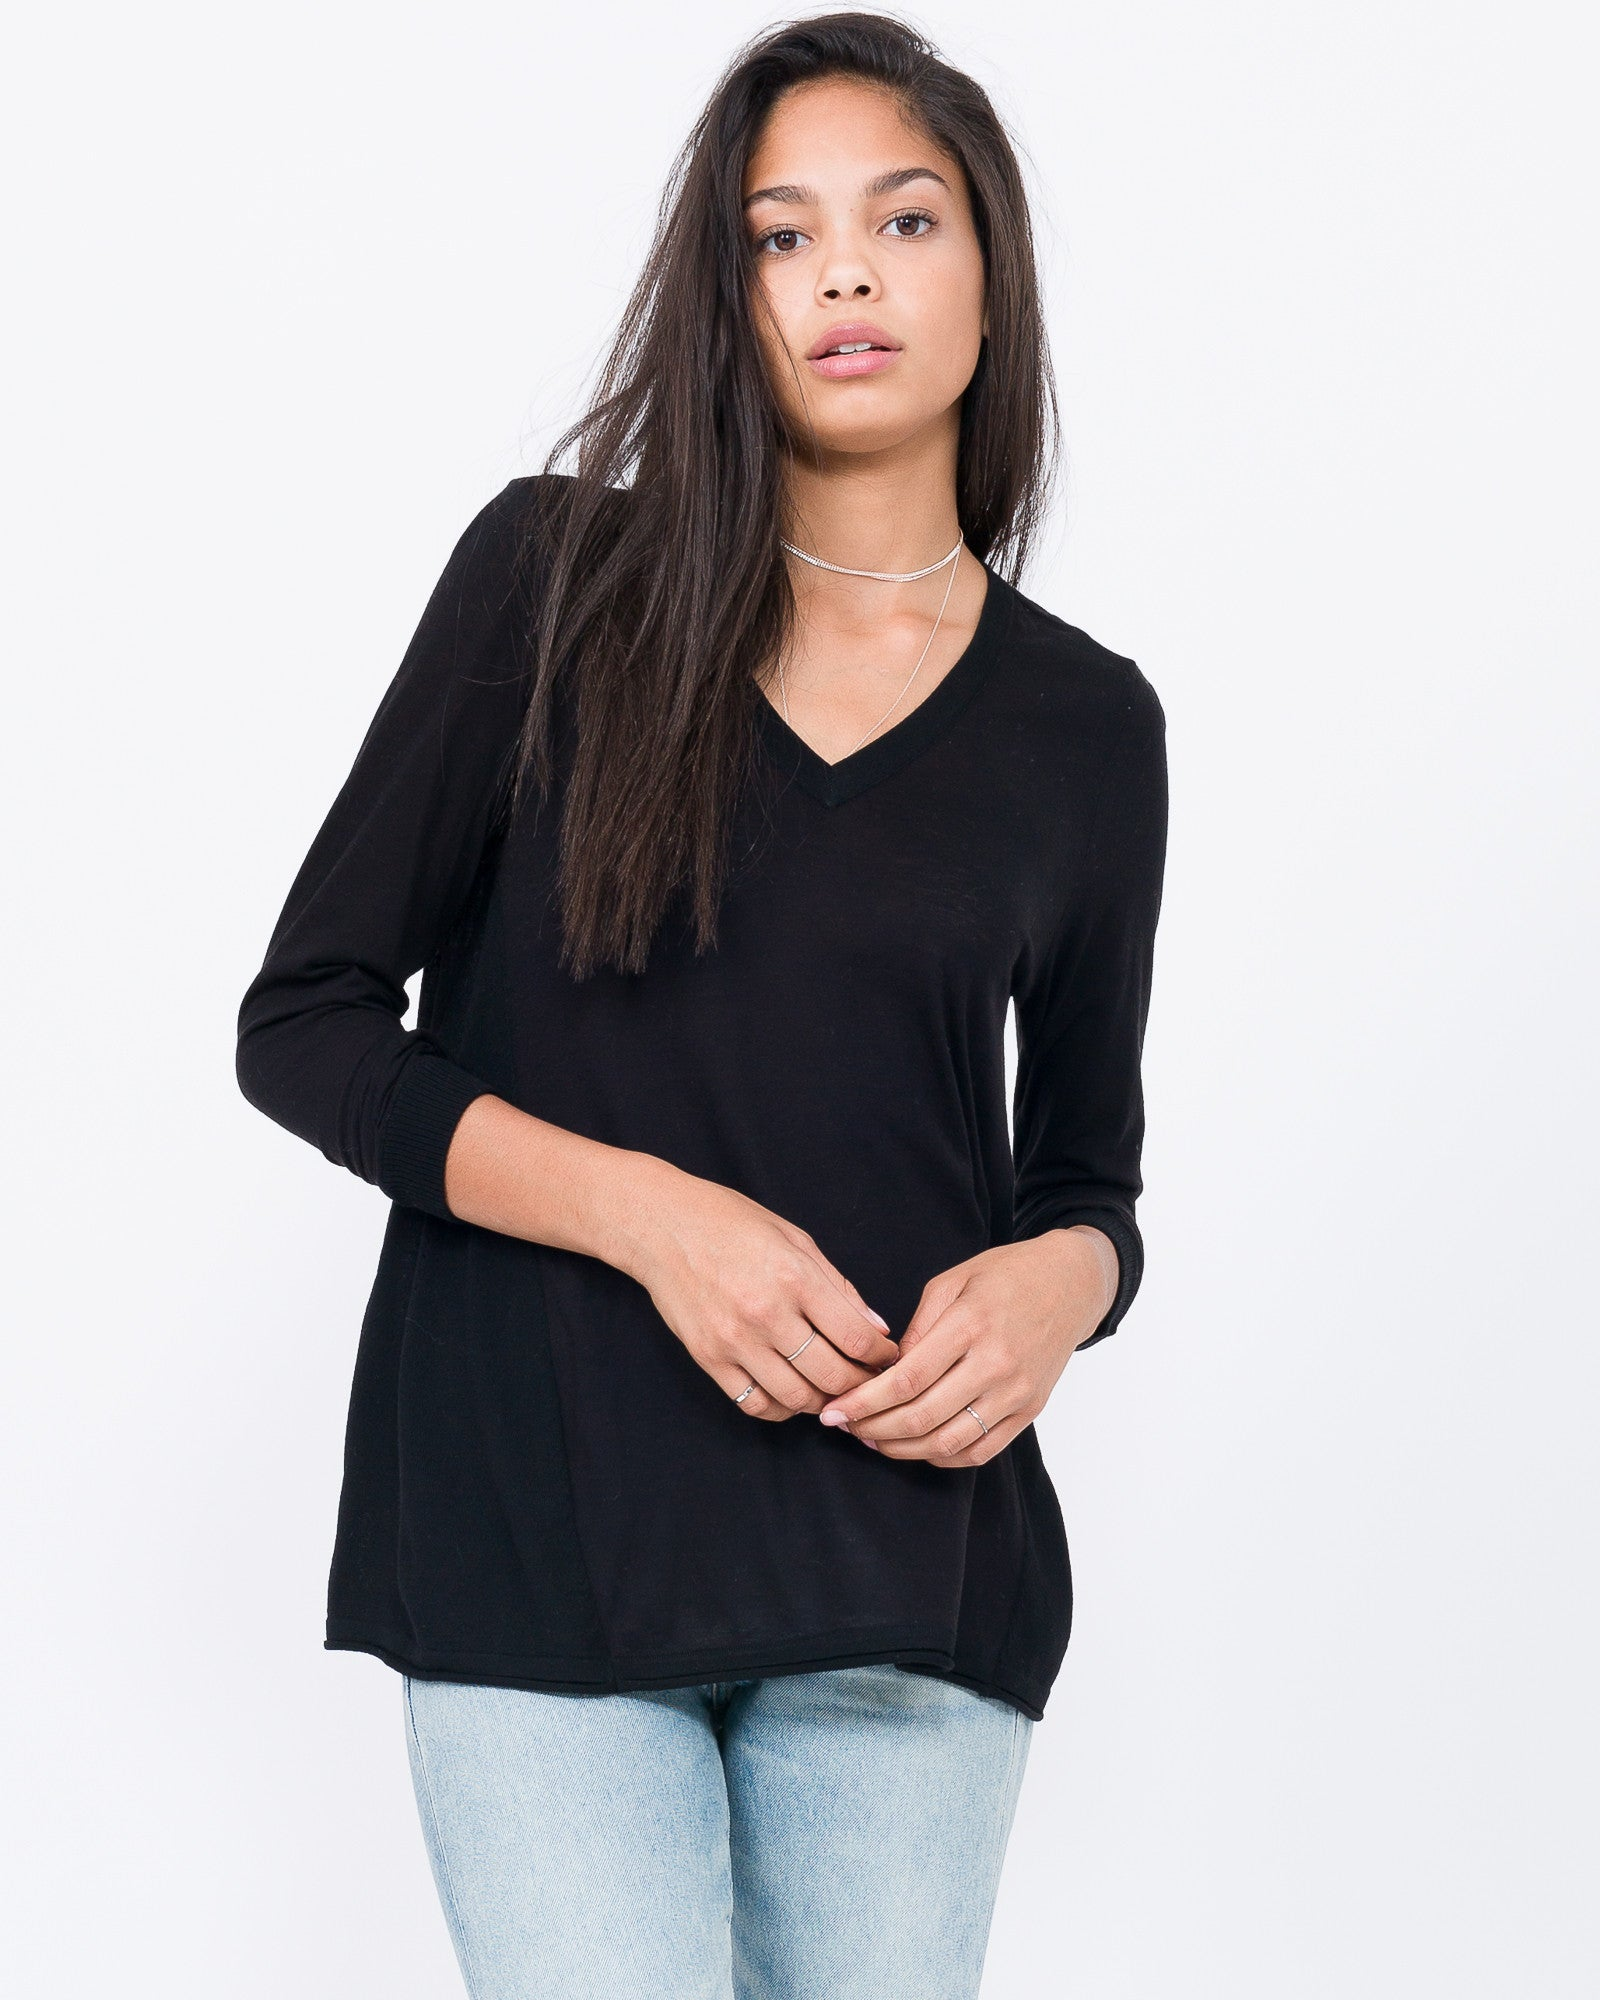 black cotton tee shirt for girls